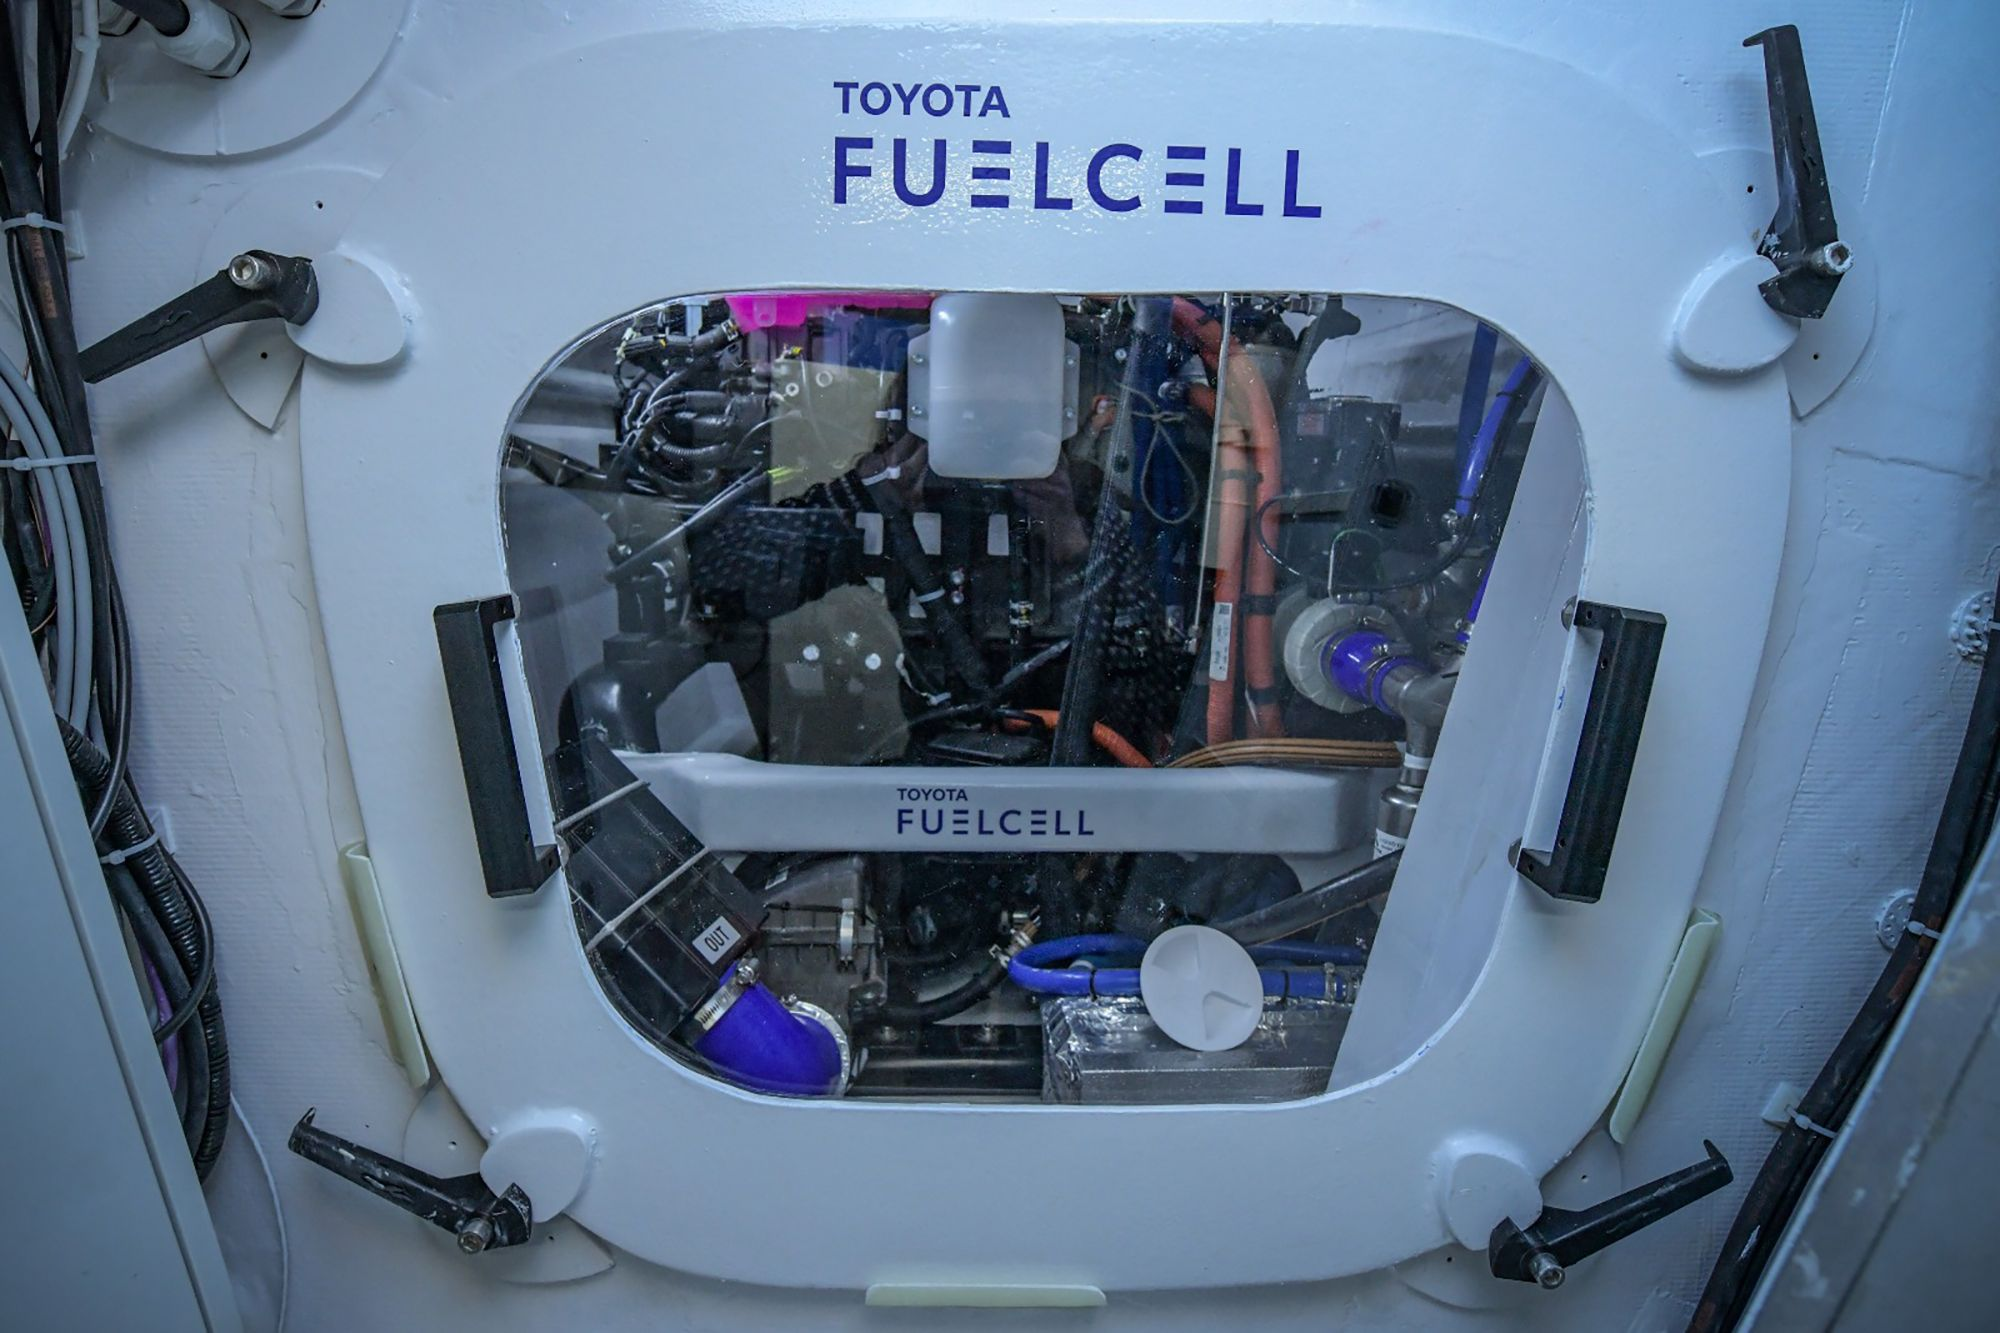 Toyota developed the specially designed fuel cell system of the first energy self-sufficient